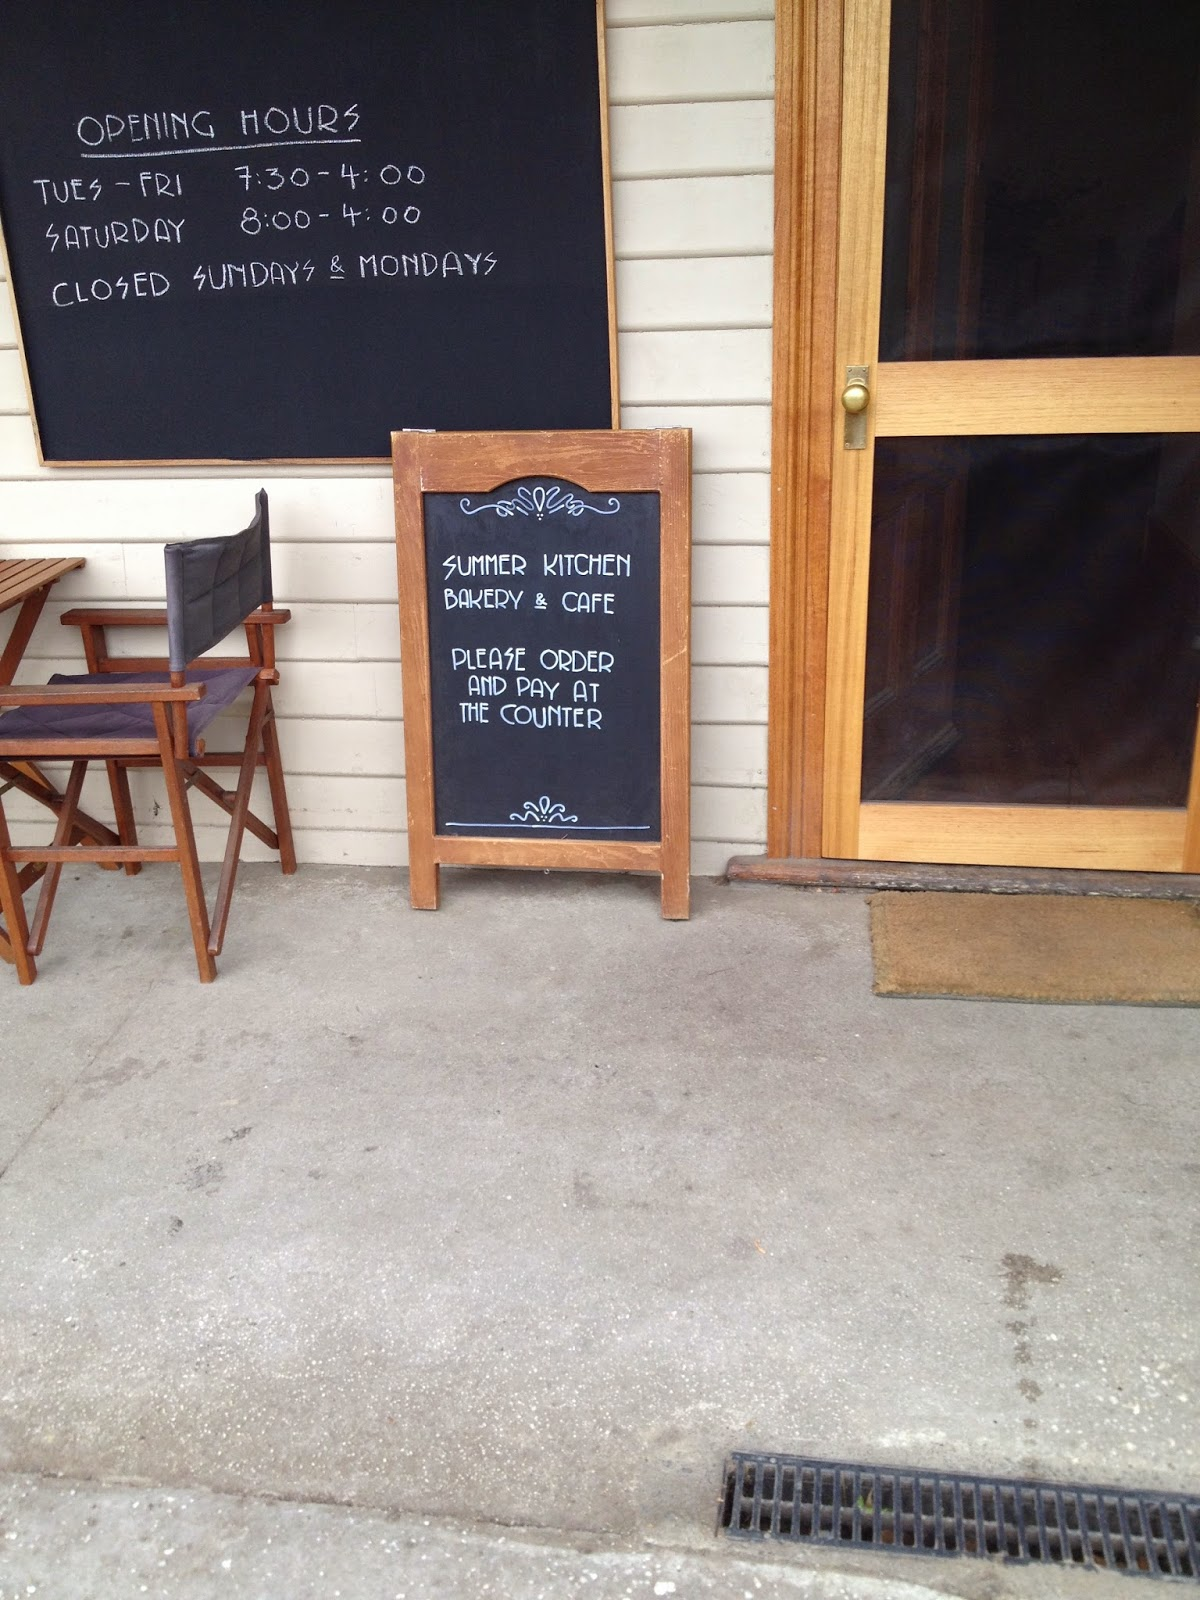 the yellow house in the U: Summer Kitchen Bakery and Cafe